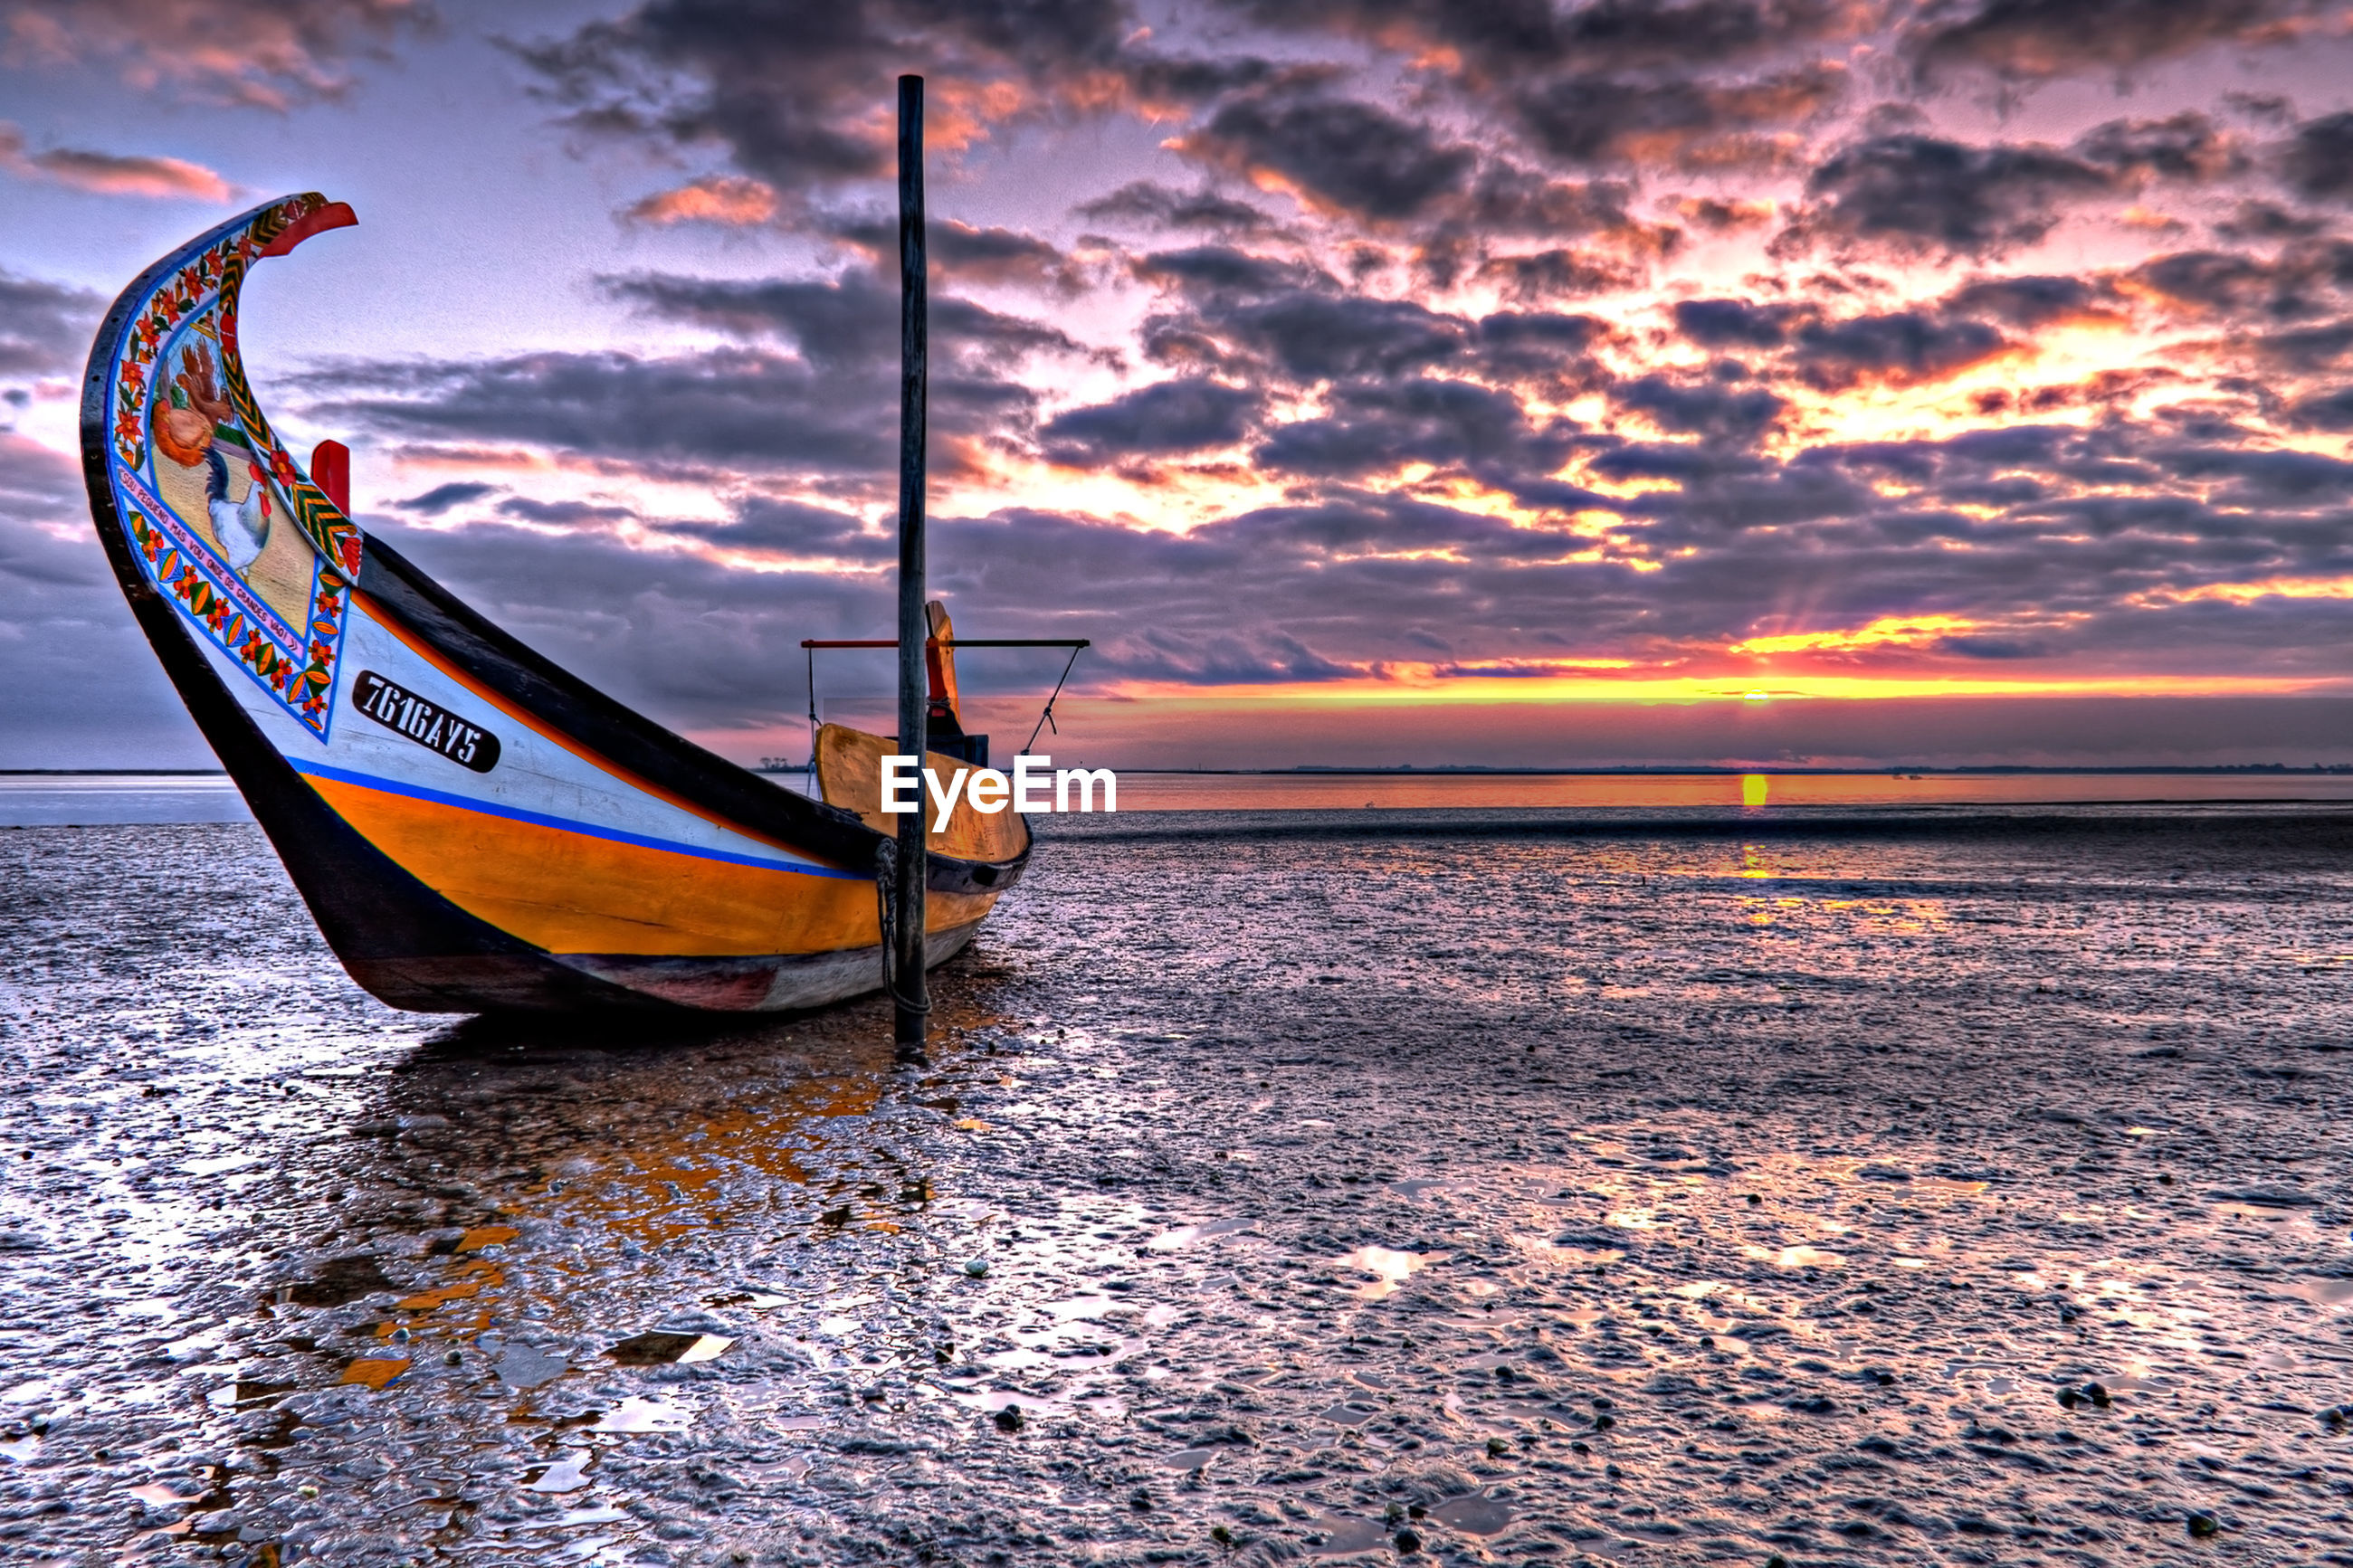 Fishing boat moored on shore at beach against cloudy sky during low tide